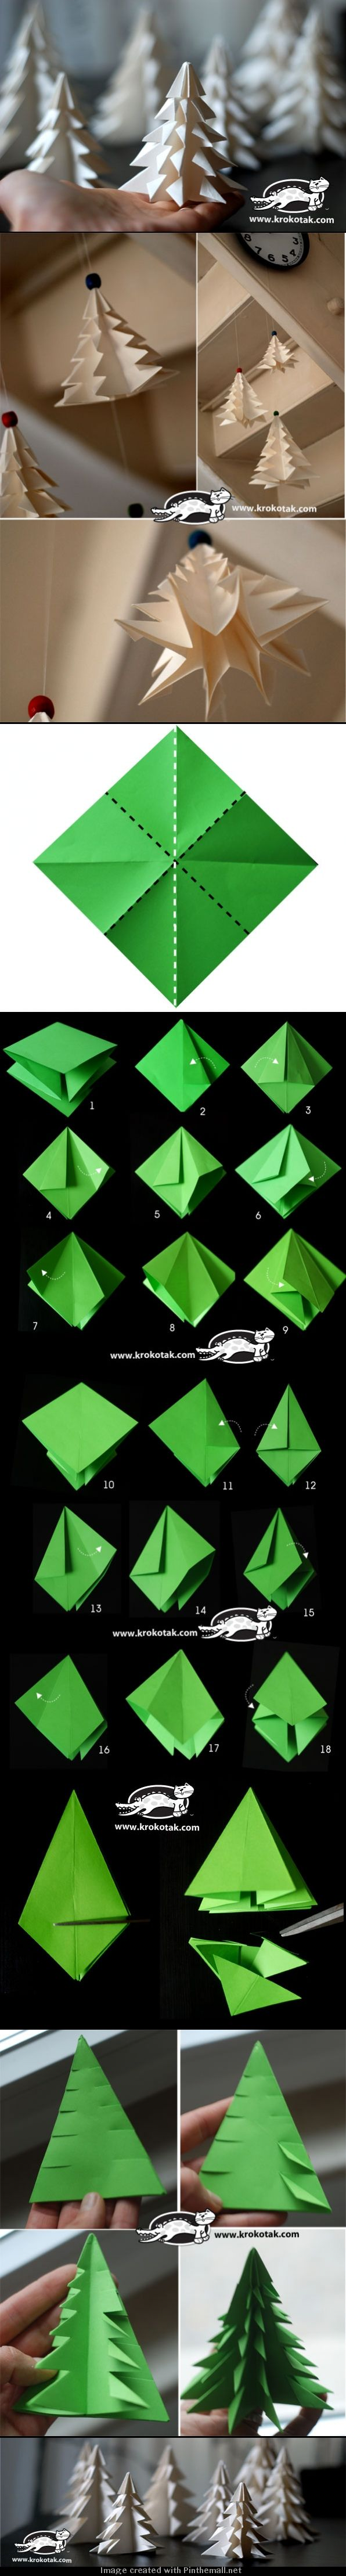 How to fold and cut a christmas tree origami craft paper